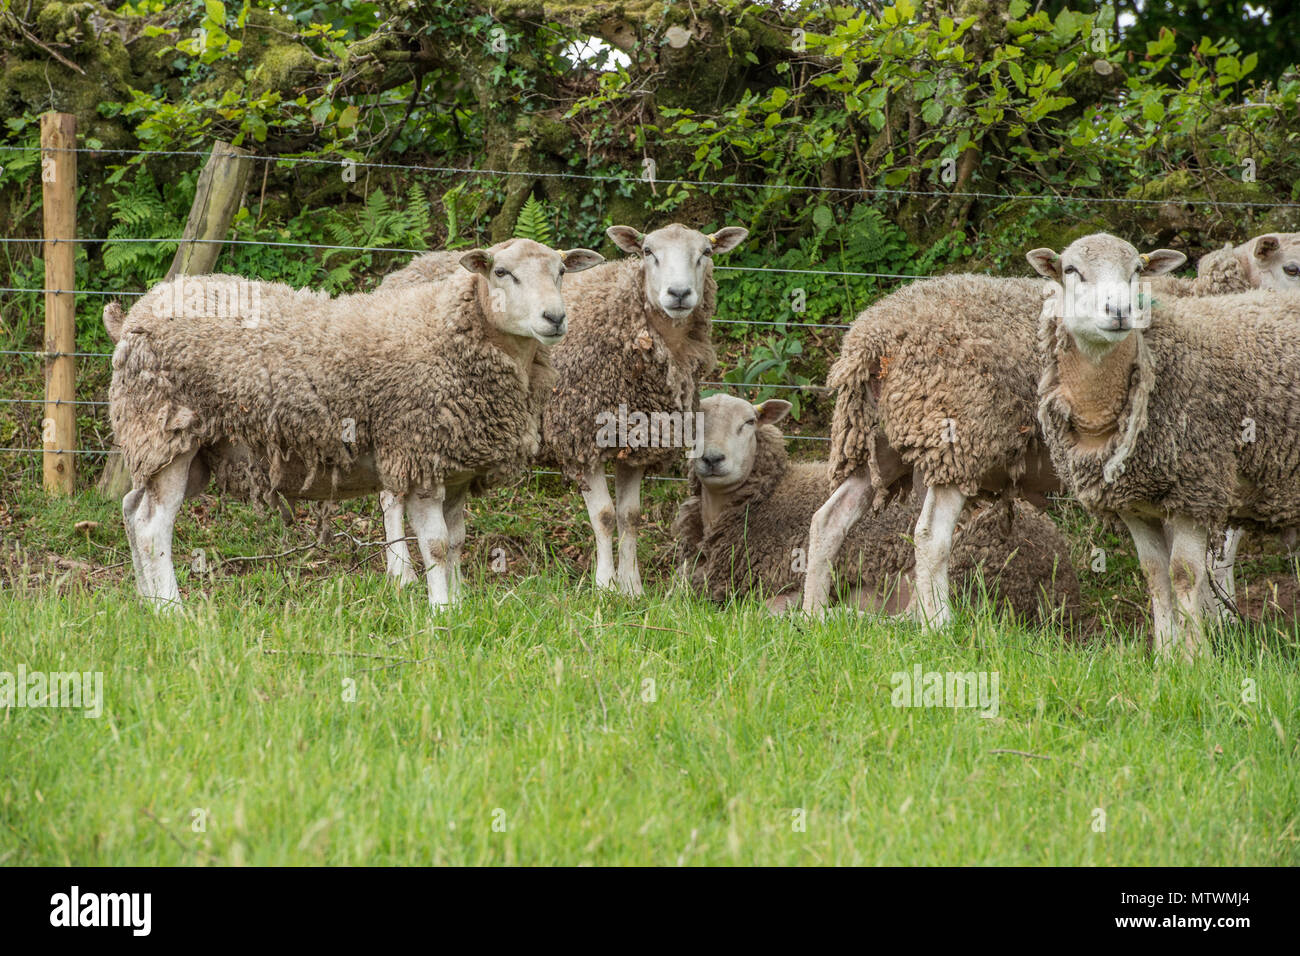 flock of sheep - Stock Image